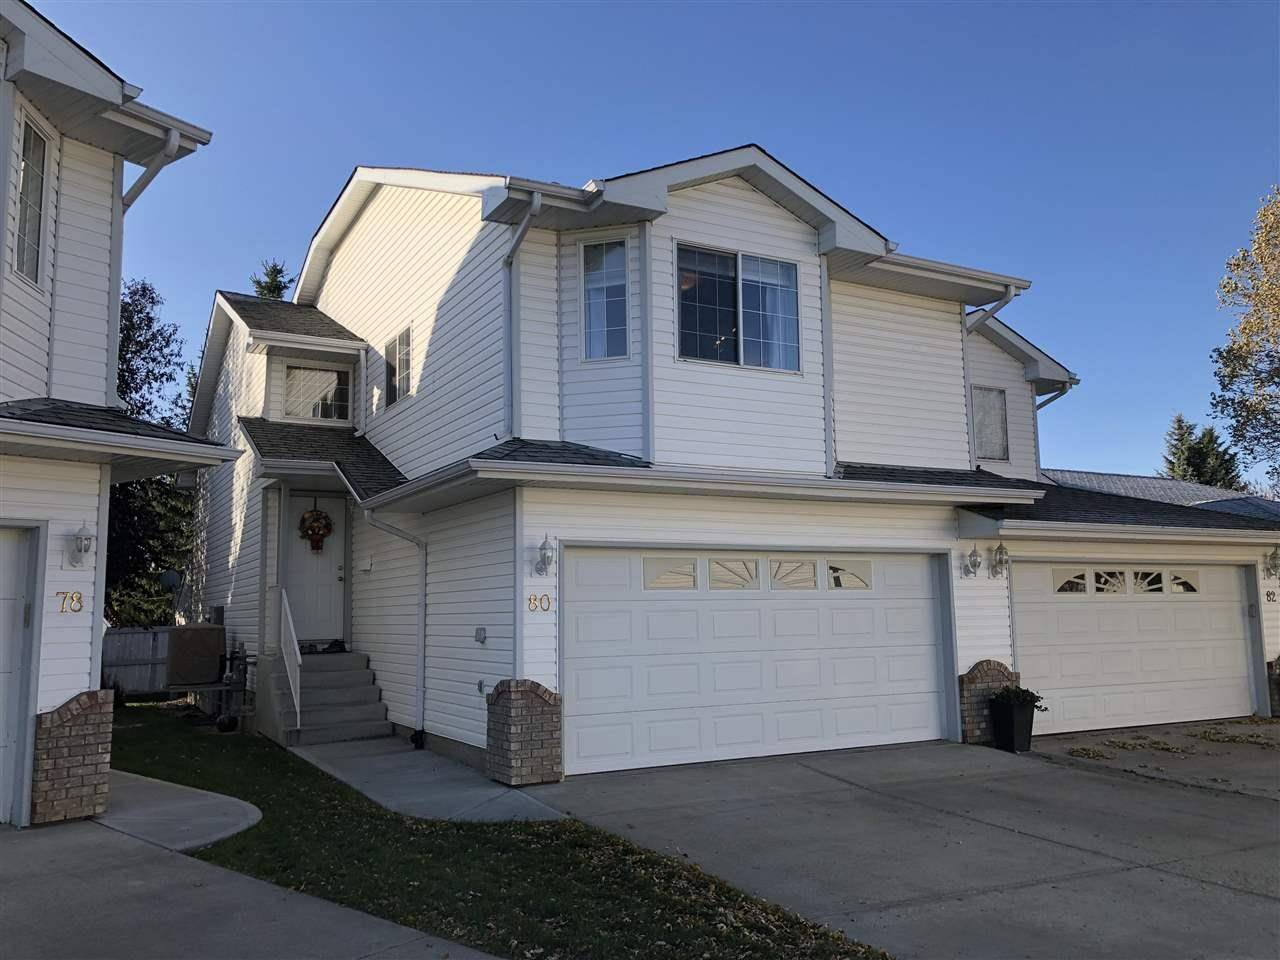 Townhouse for sale at 3 Poirier Ave Unit 80 St. Albert Alberta - MLS: E4176926